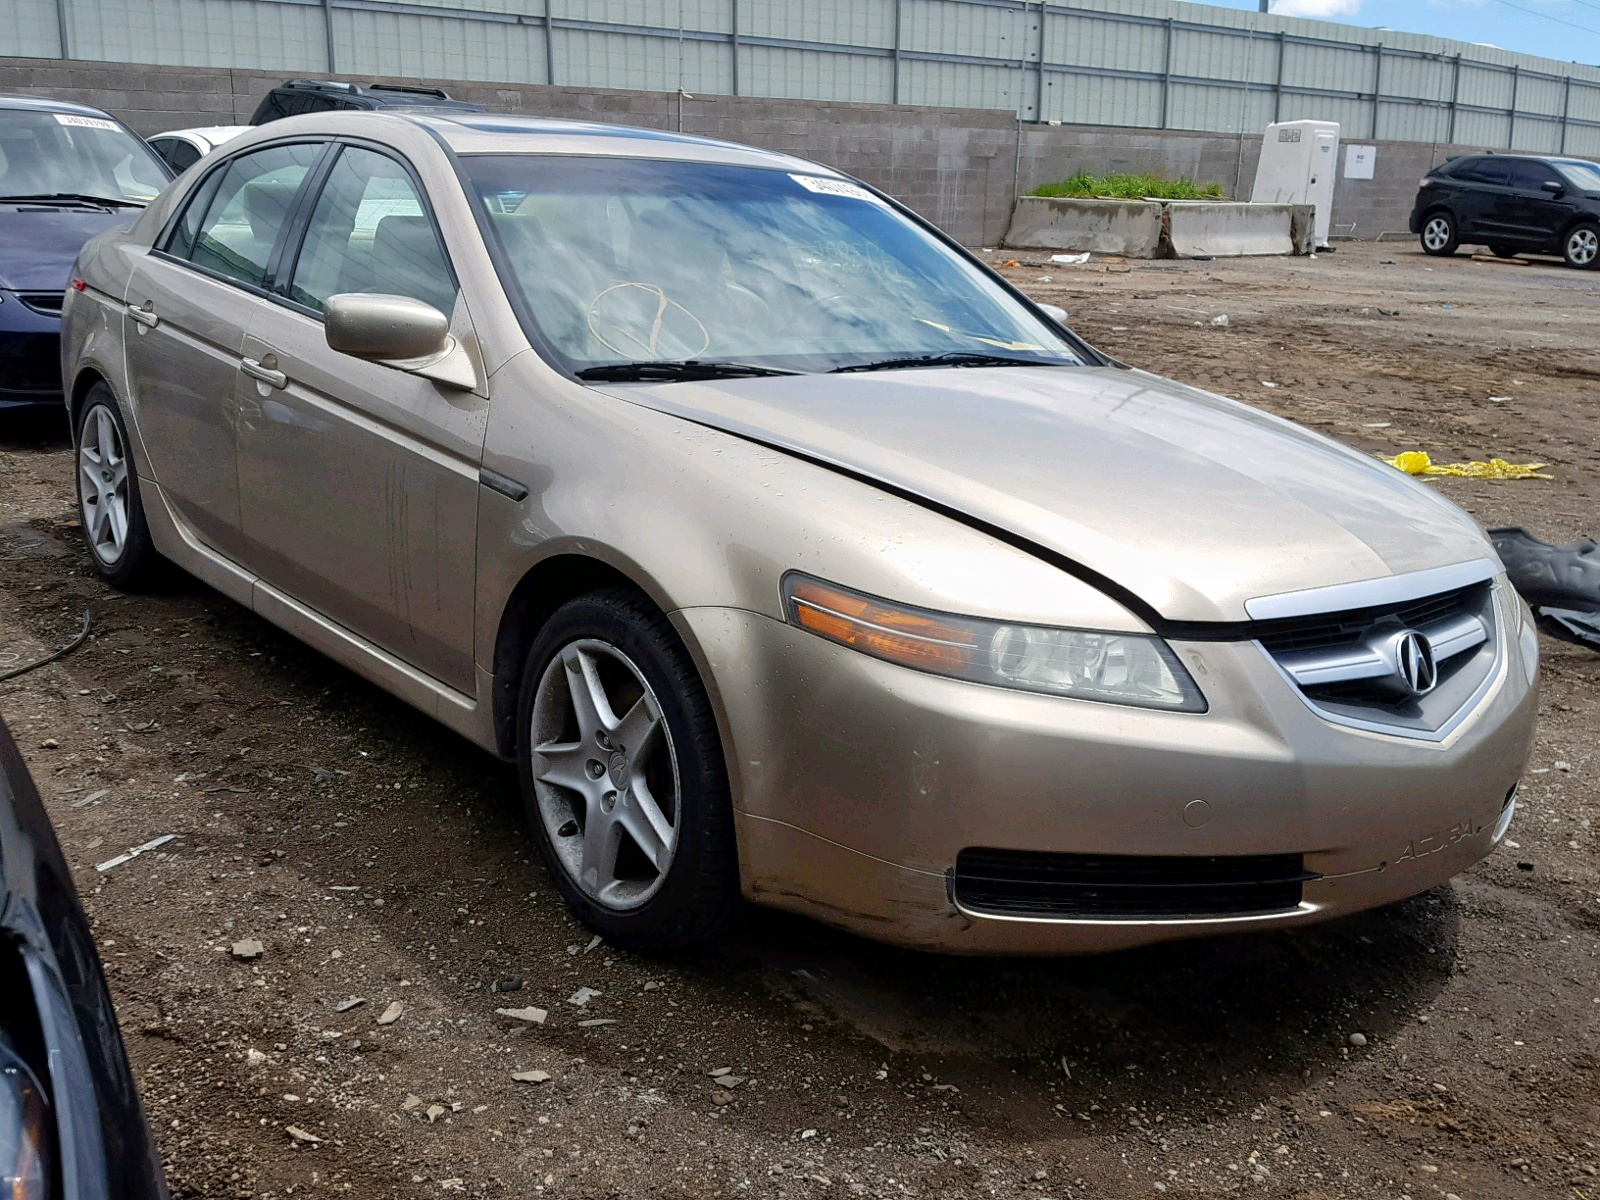 hight resolution of 19uua66215a077893 2005 acura tl 3 2l left view 19uua66215a077893